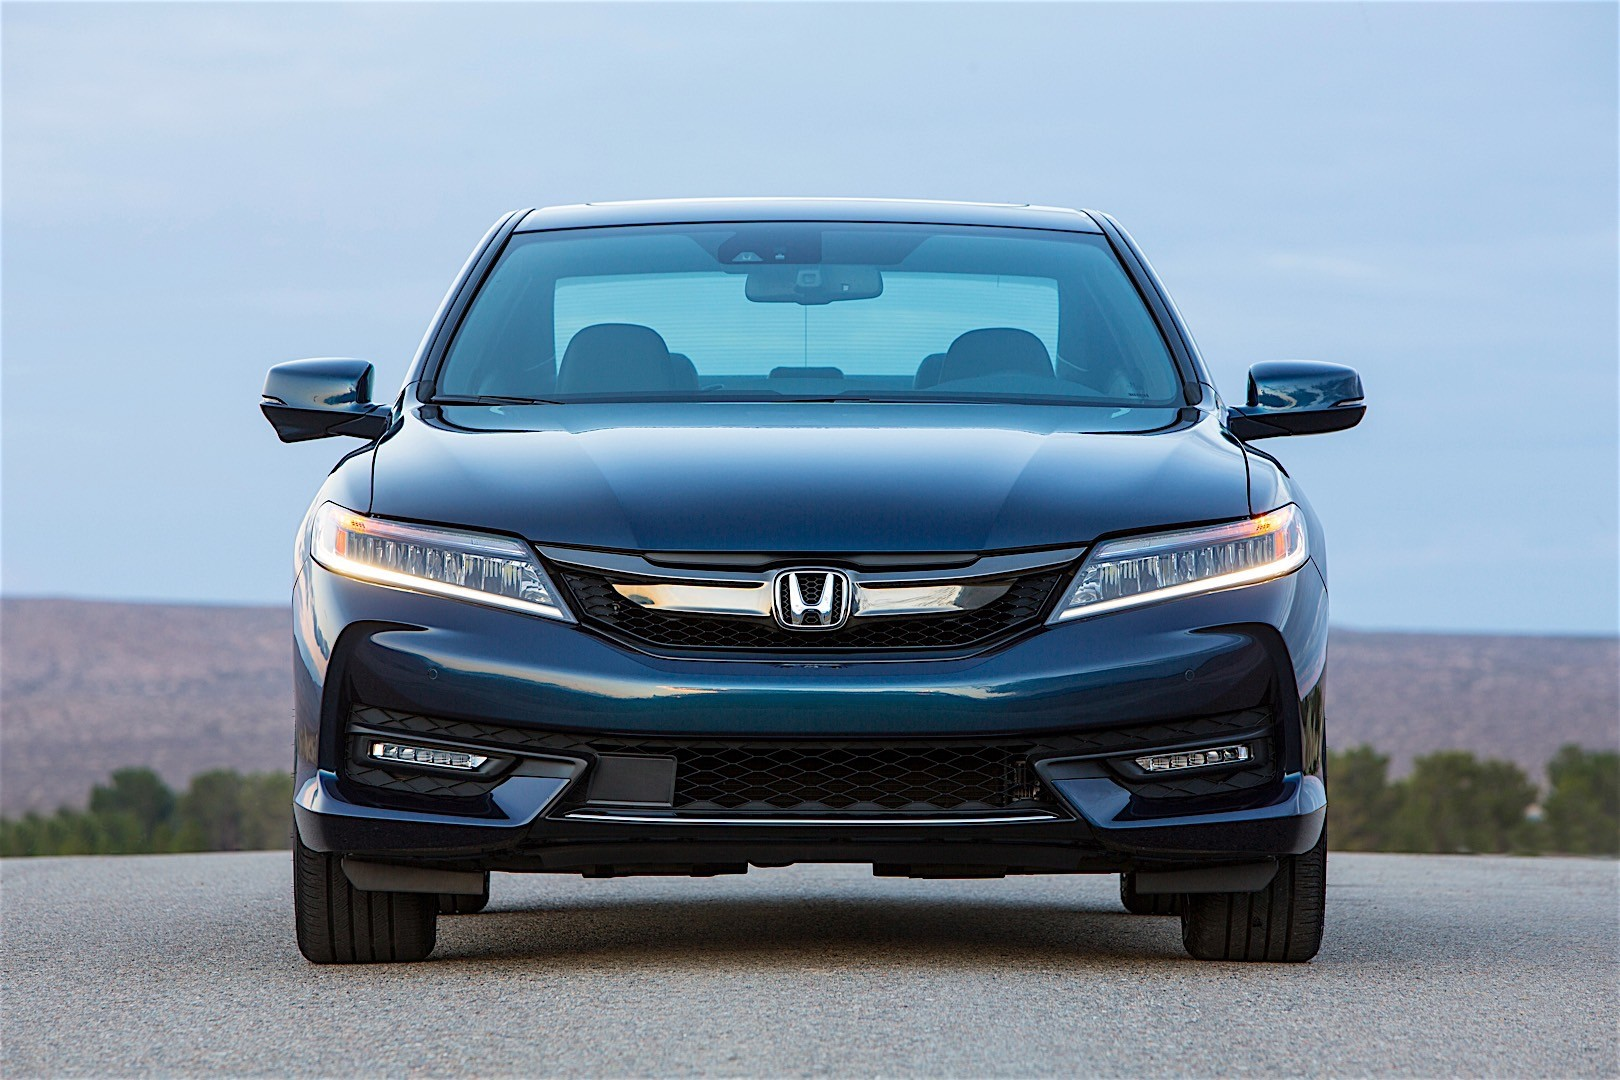 honda accord coupe specs 2015 2016 2017 2018. Black Bedroom Furniture Sets. Home Design Ideas